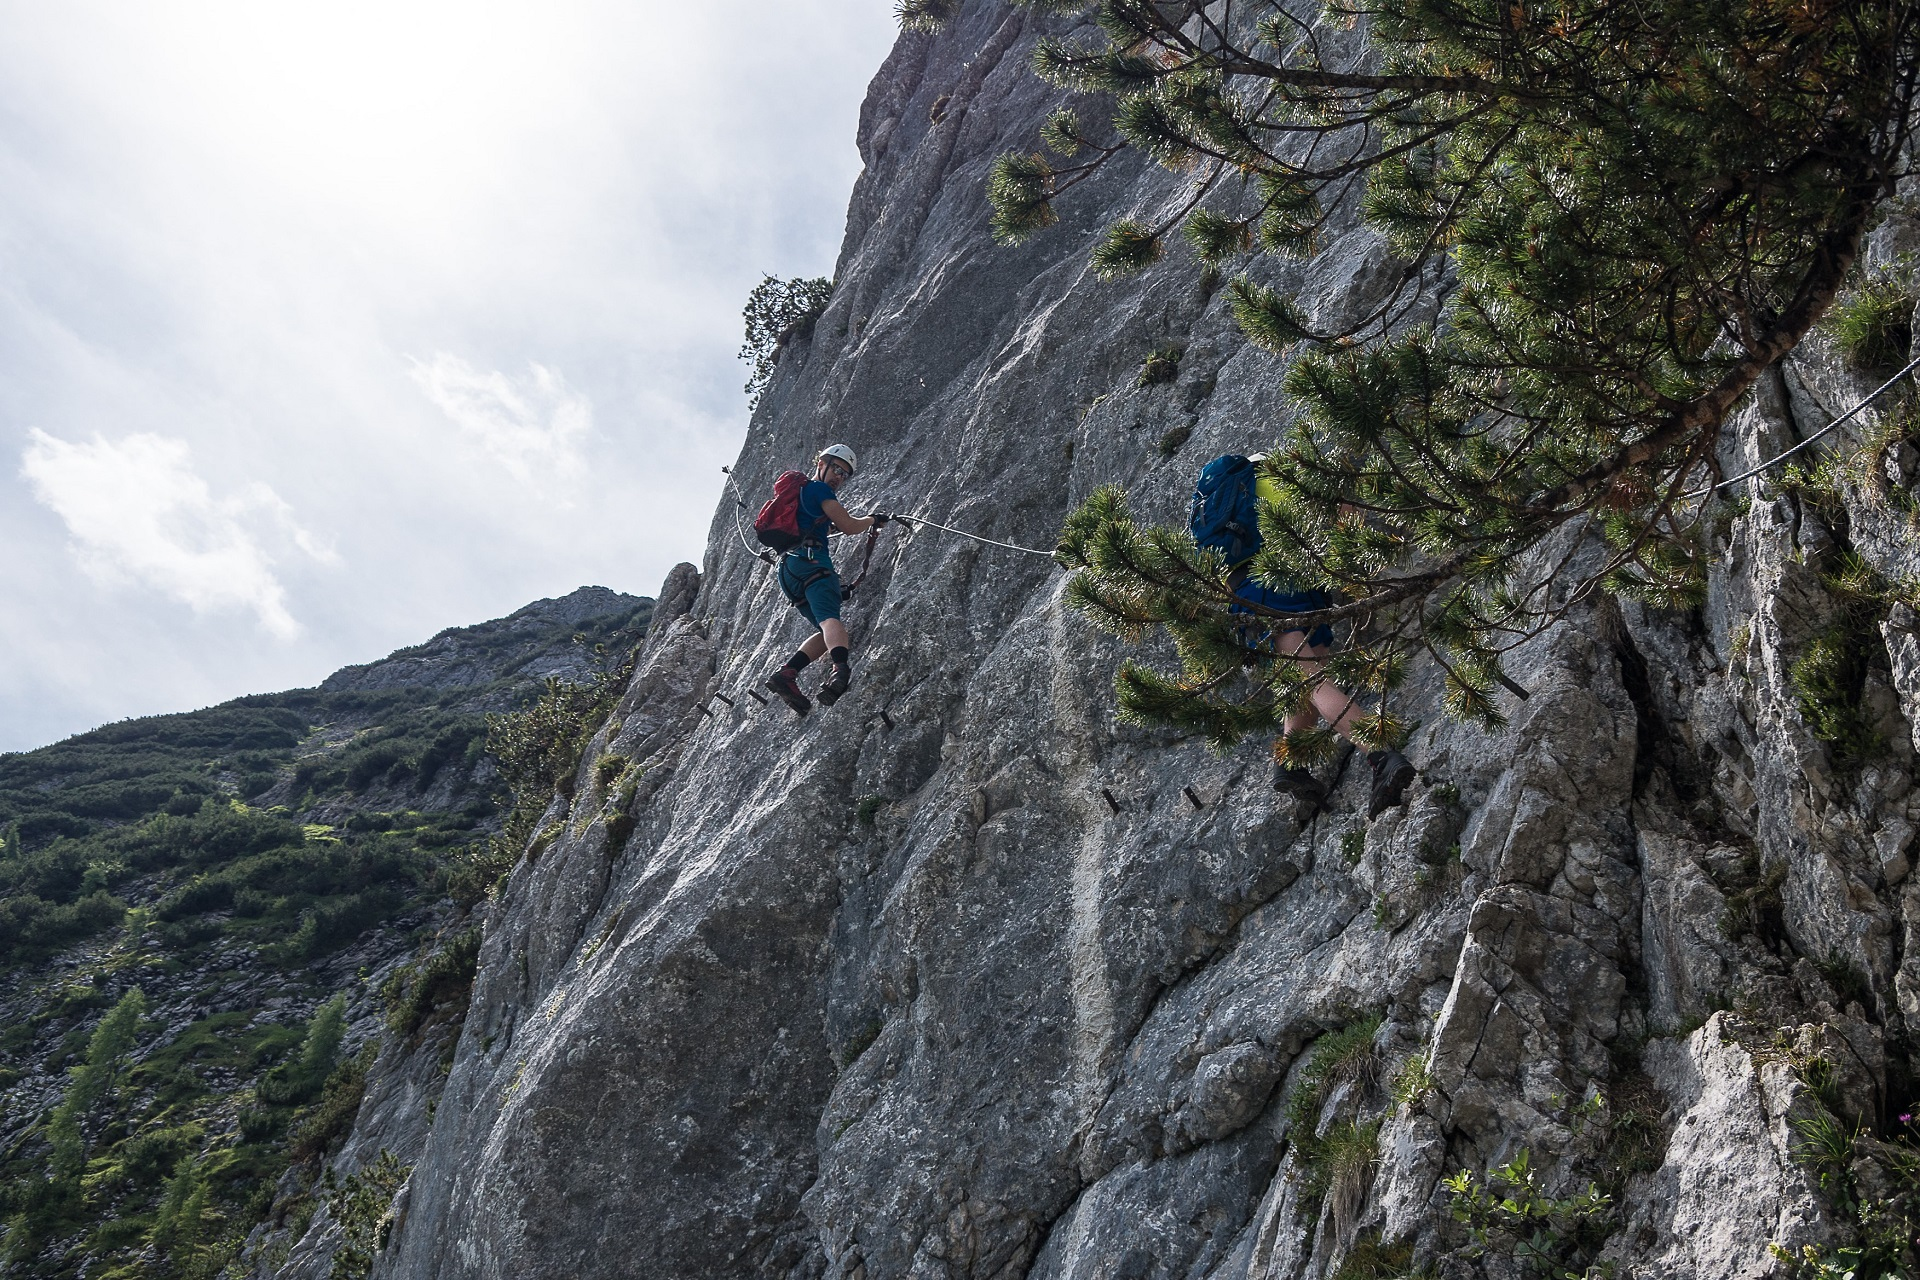 Trawers B/C, Intersport Klettersteig, Dachstein West